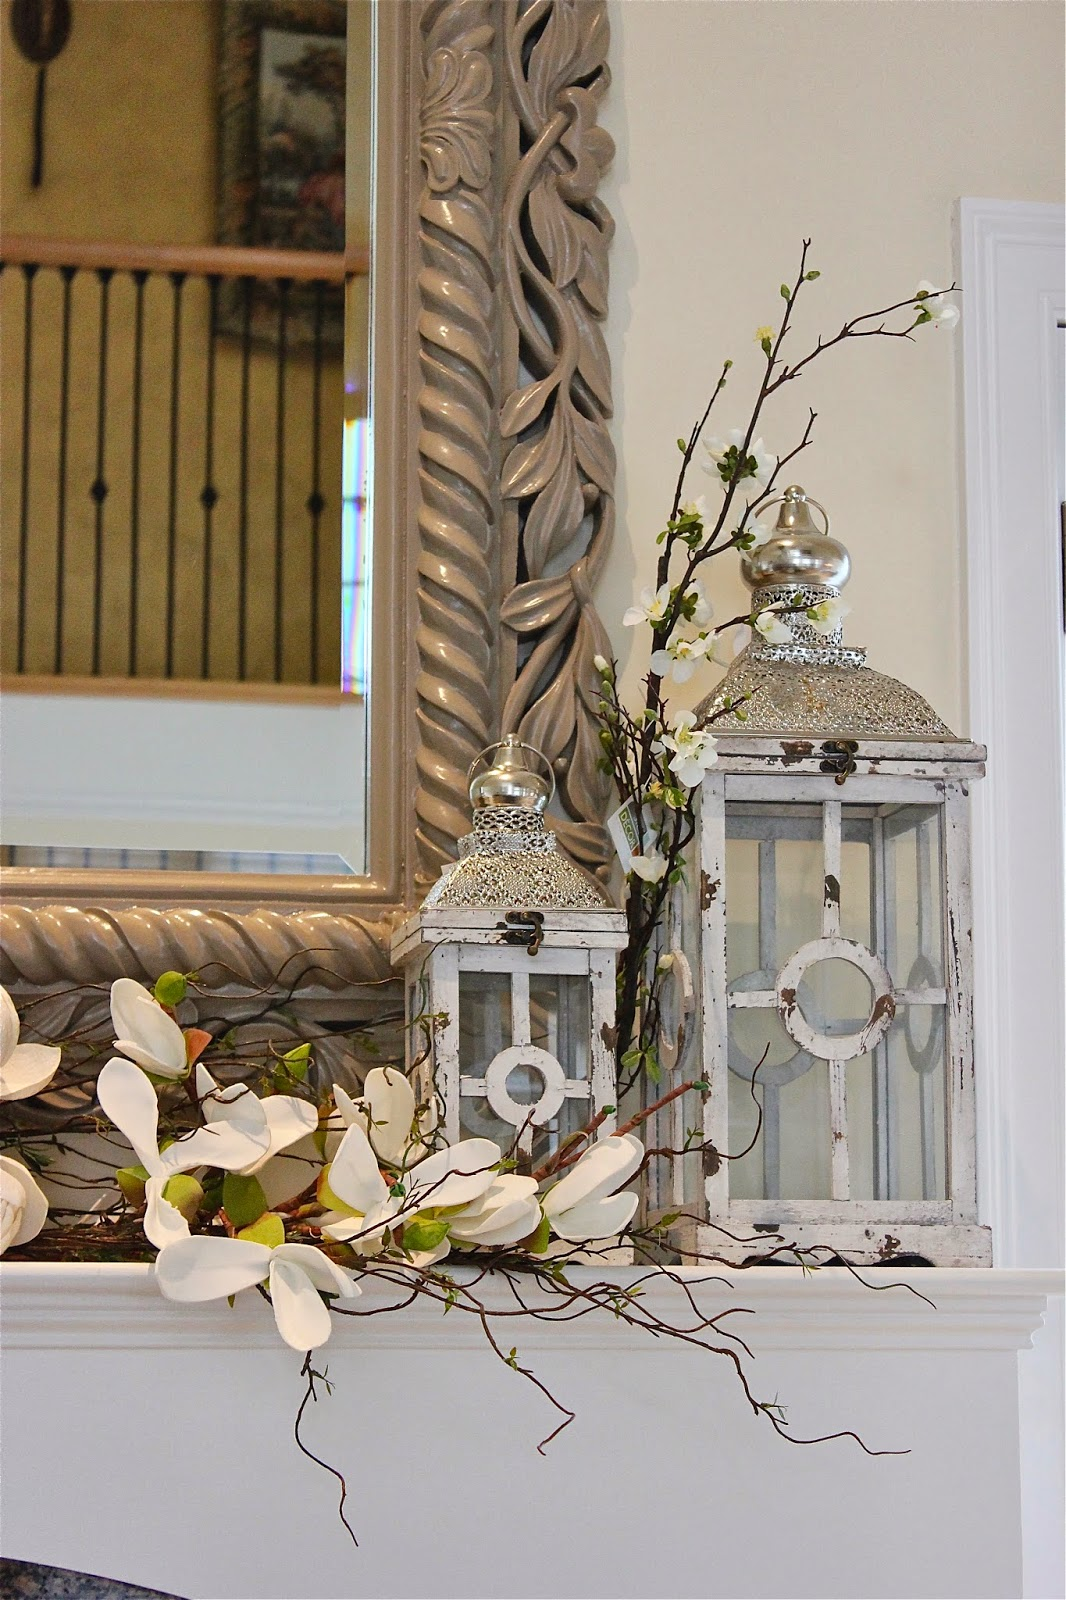 Maison Decor Styling A Mantle With Lanterns And Florals